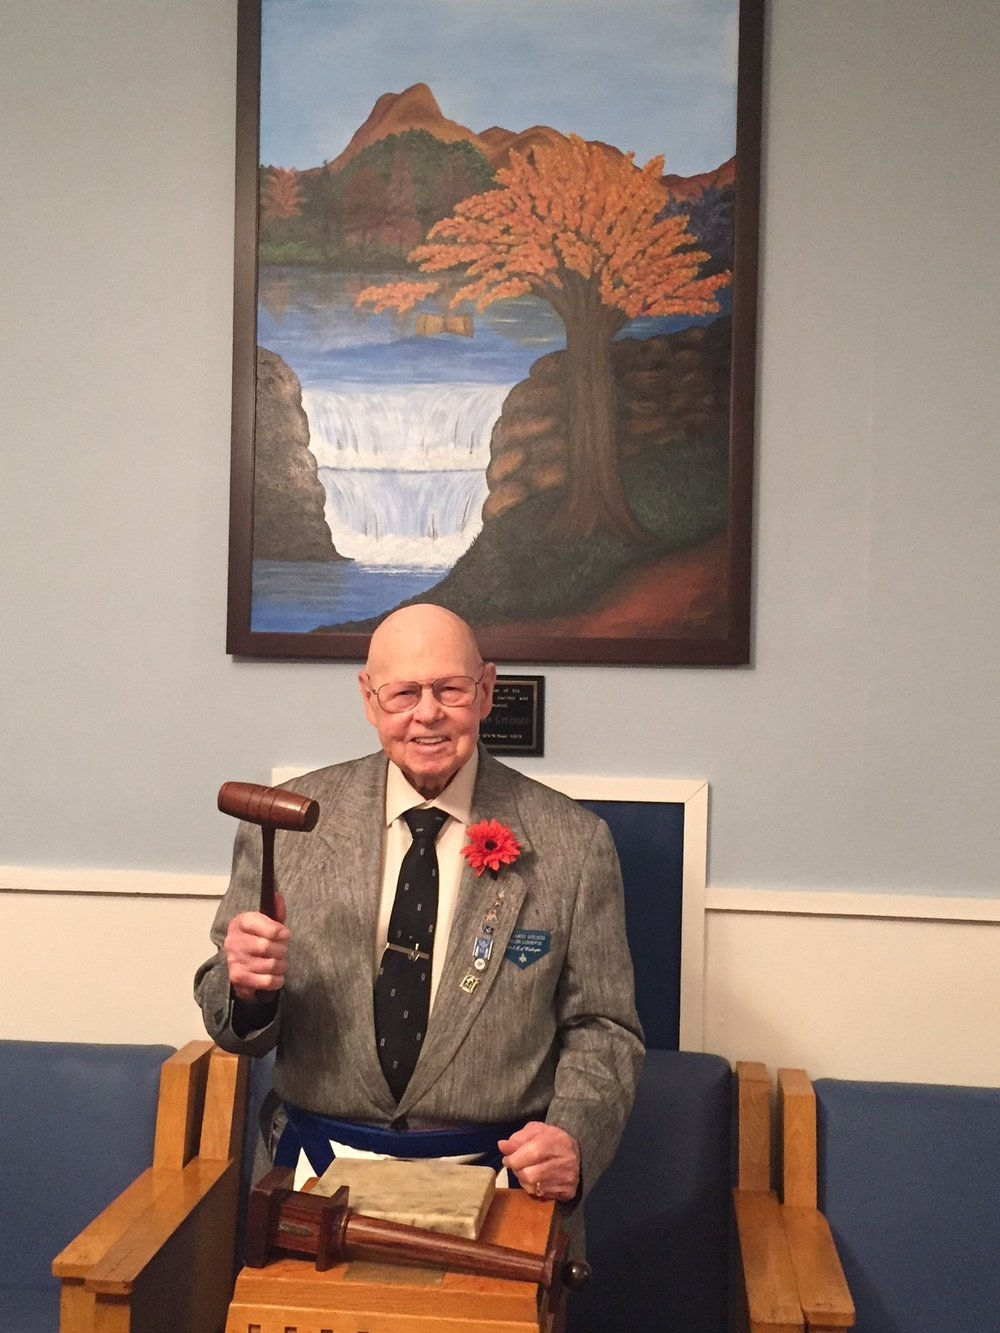 On December 2, 2017, during the 116th Installation of Officers, the members of the AshlerTrestle Board dedicated the painting now hung in the South to WB Jim Greimes, Past Master of Ashler Lodge in 1986. -